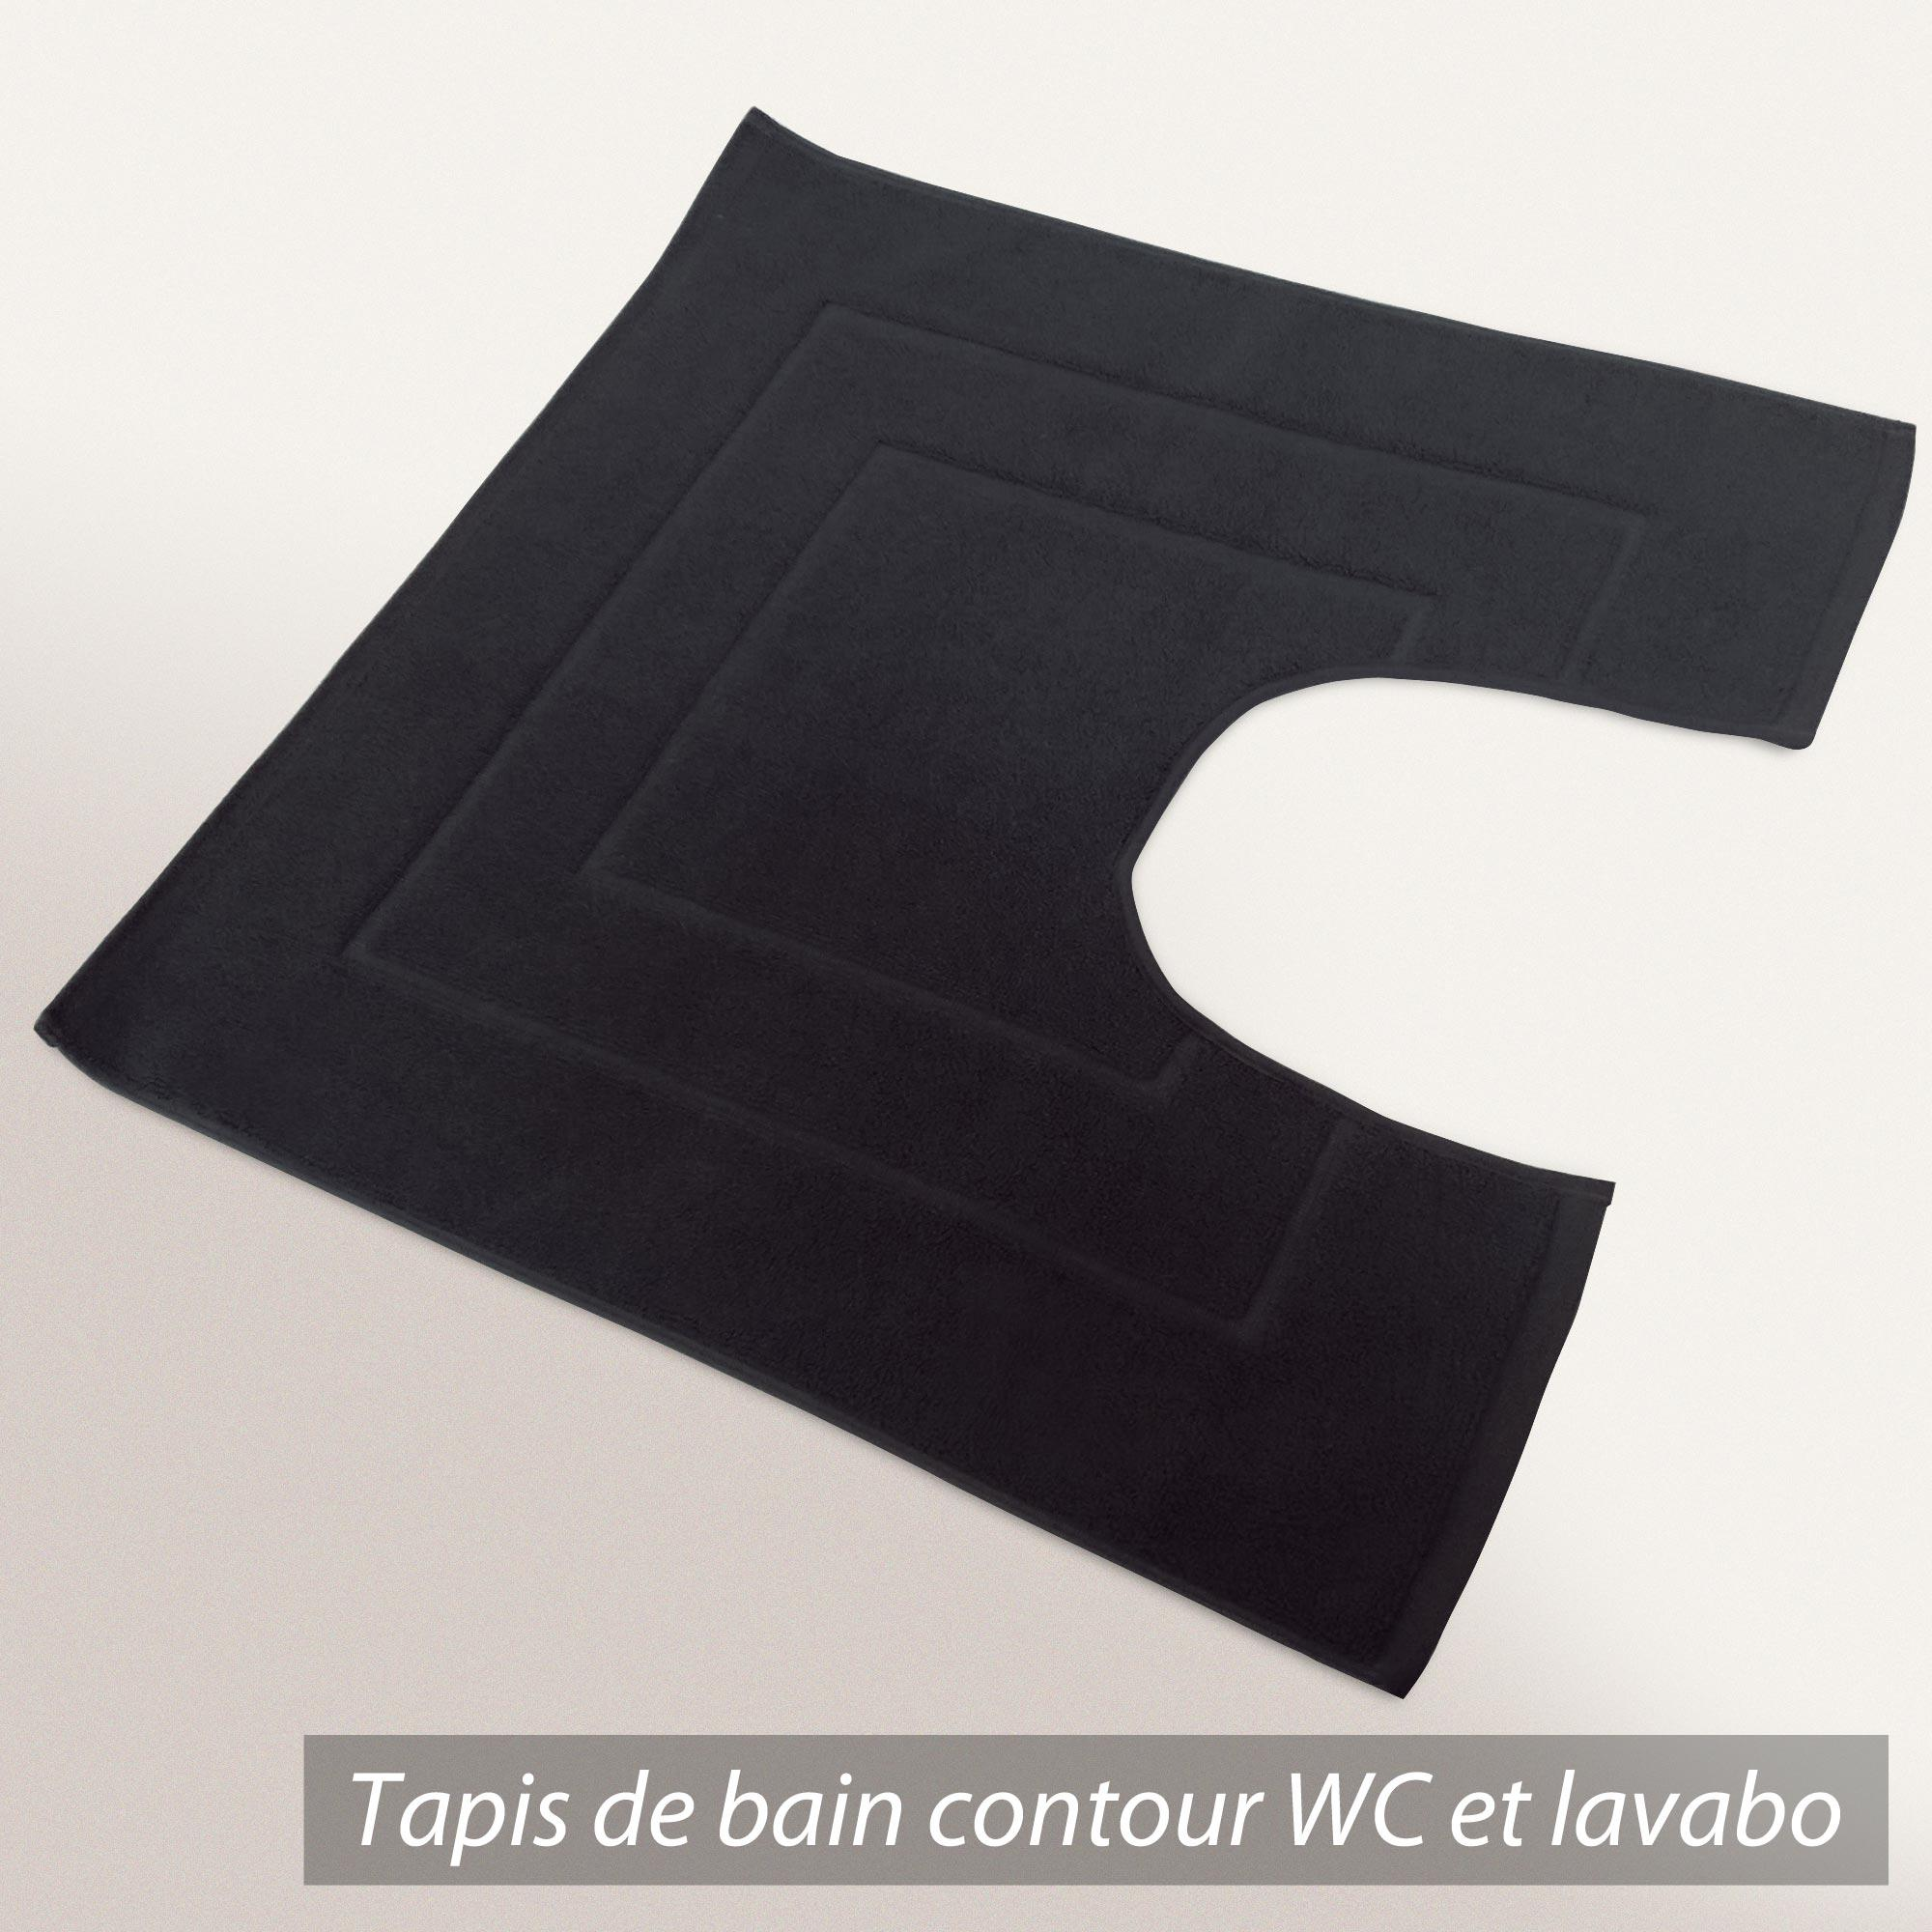 coton tapis de bain contour wc et lavabo 60x60 cm flair anthracite 1500 g m2. Black Bedroom Furniture Sets. Home Design Ideas